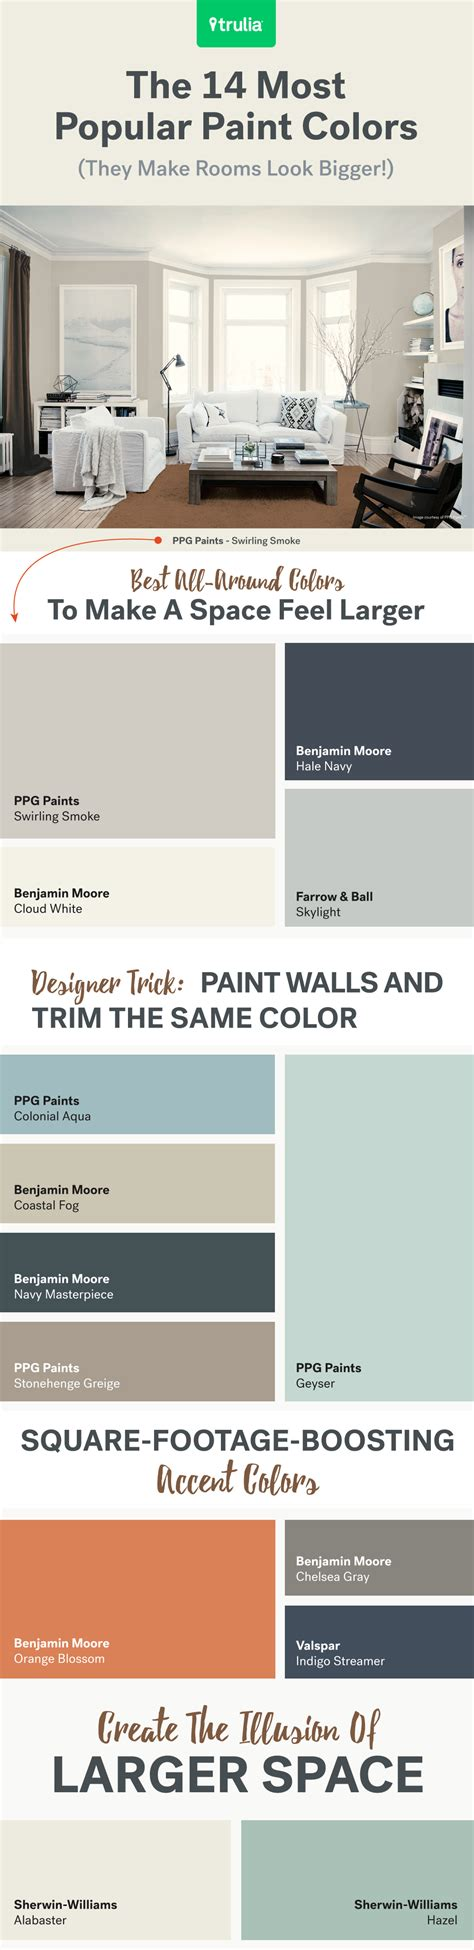 making most of small spaces sotech asia blog 14 popular paint colors for small rooms life at home